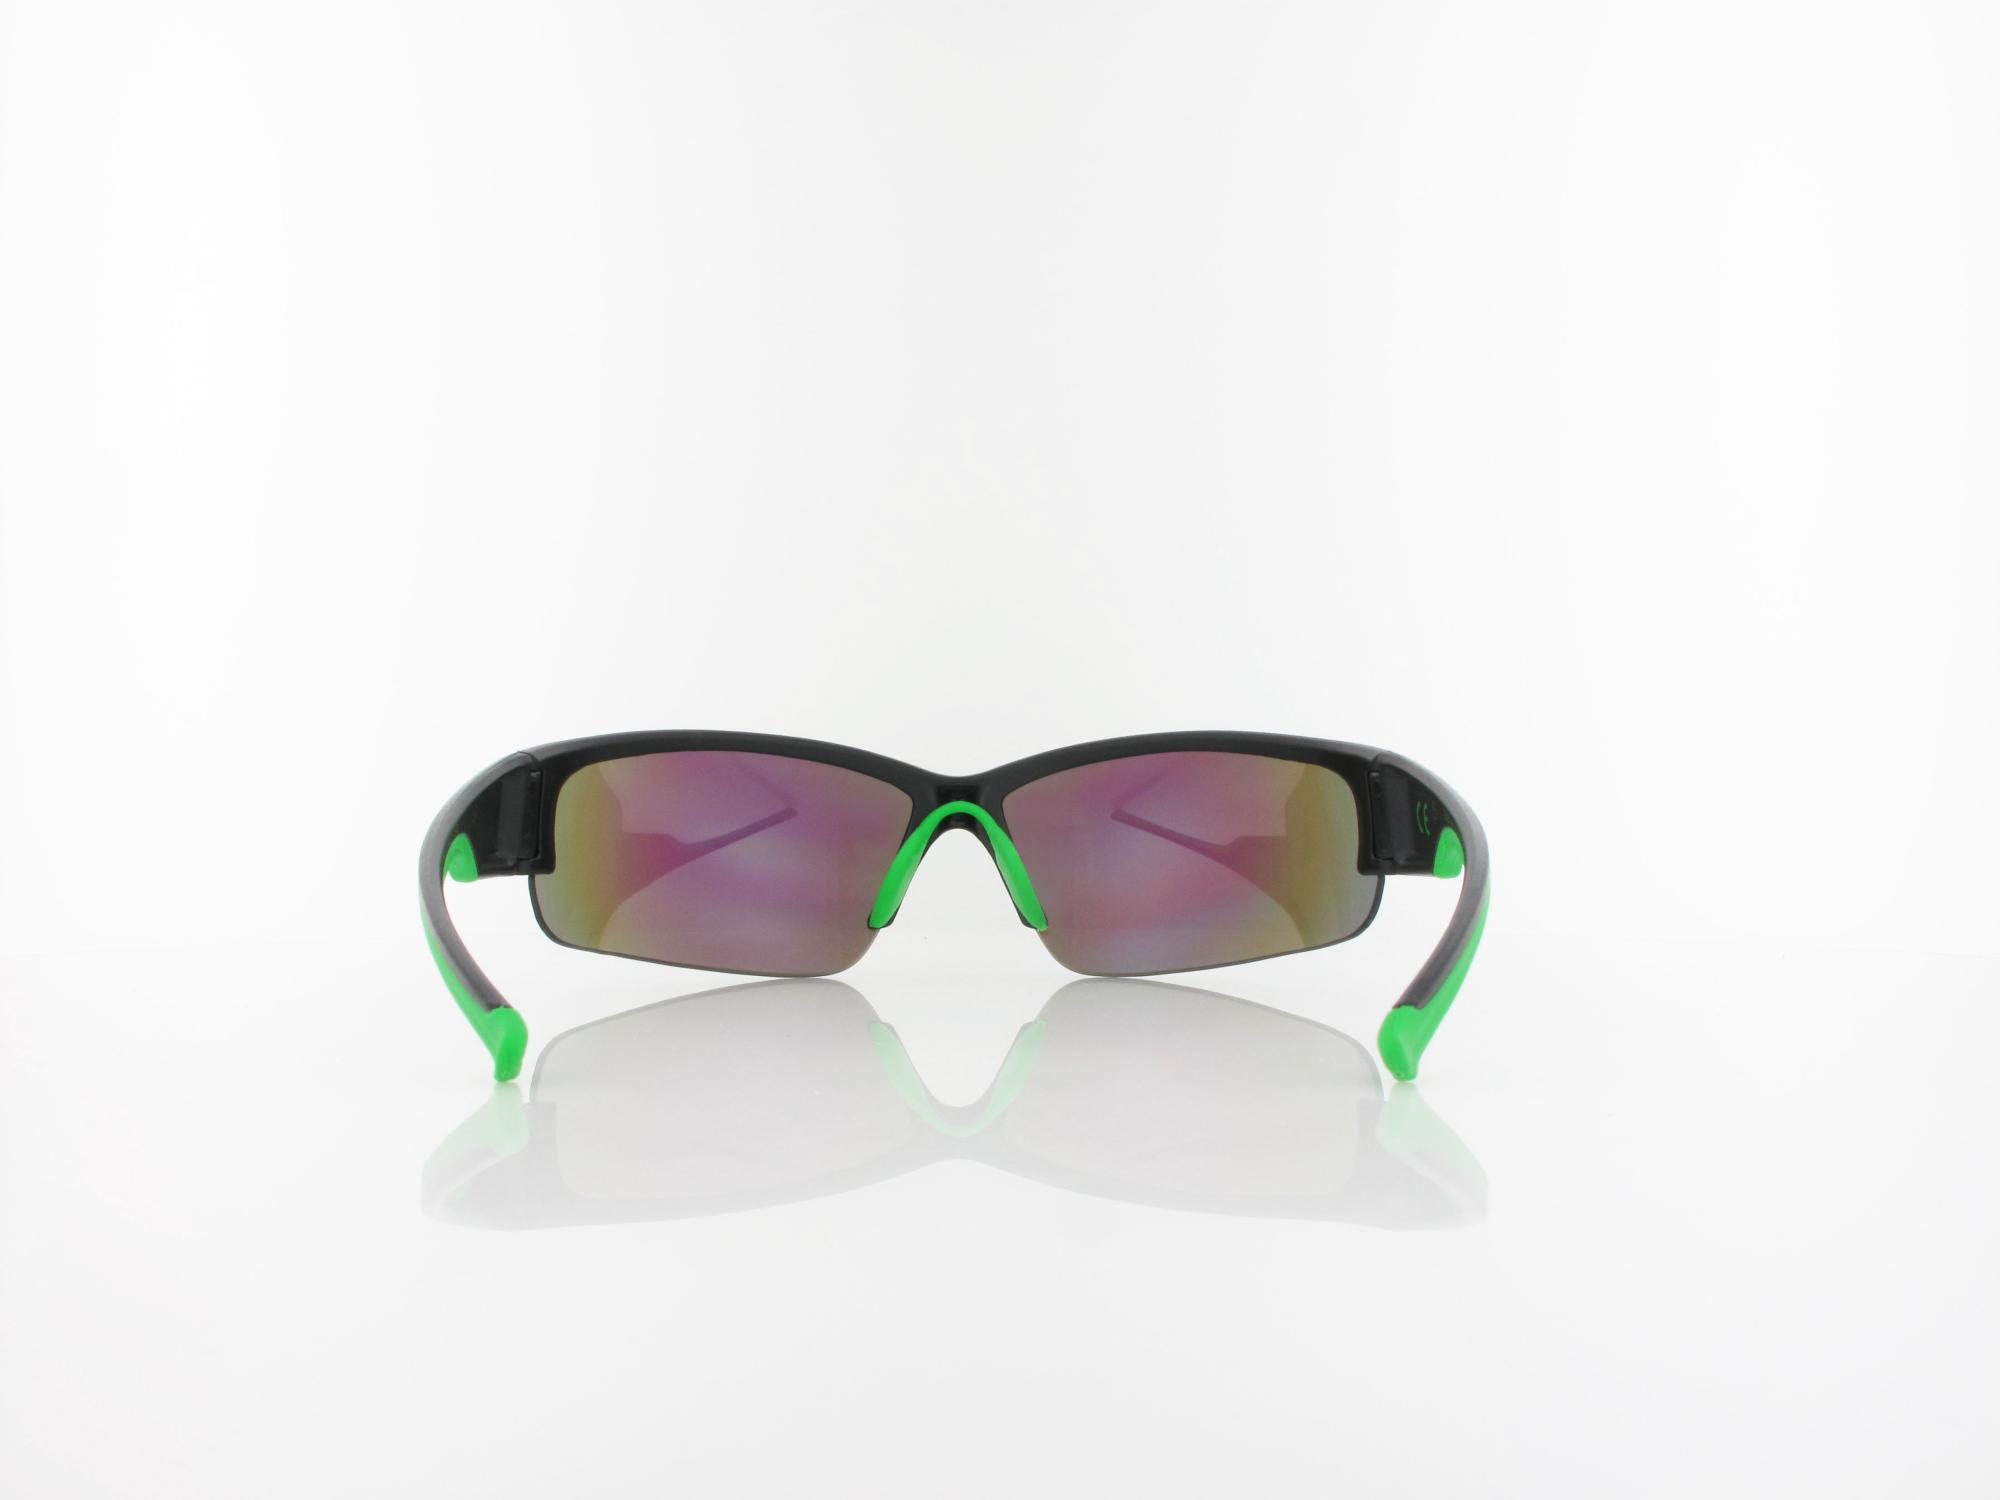 UVEX | Sportstyle 215 S530617 2716 68 | black mat green / mirror green